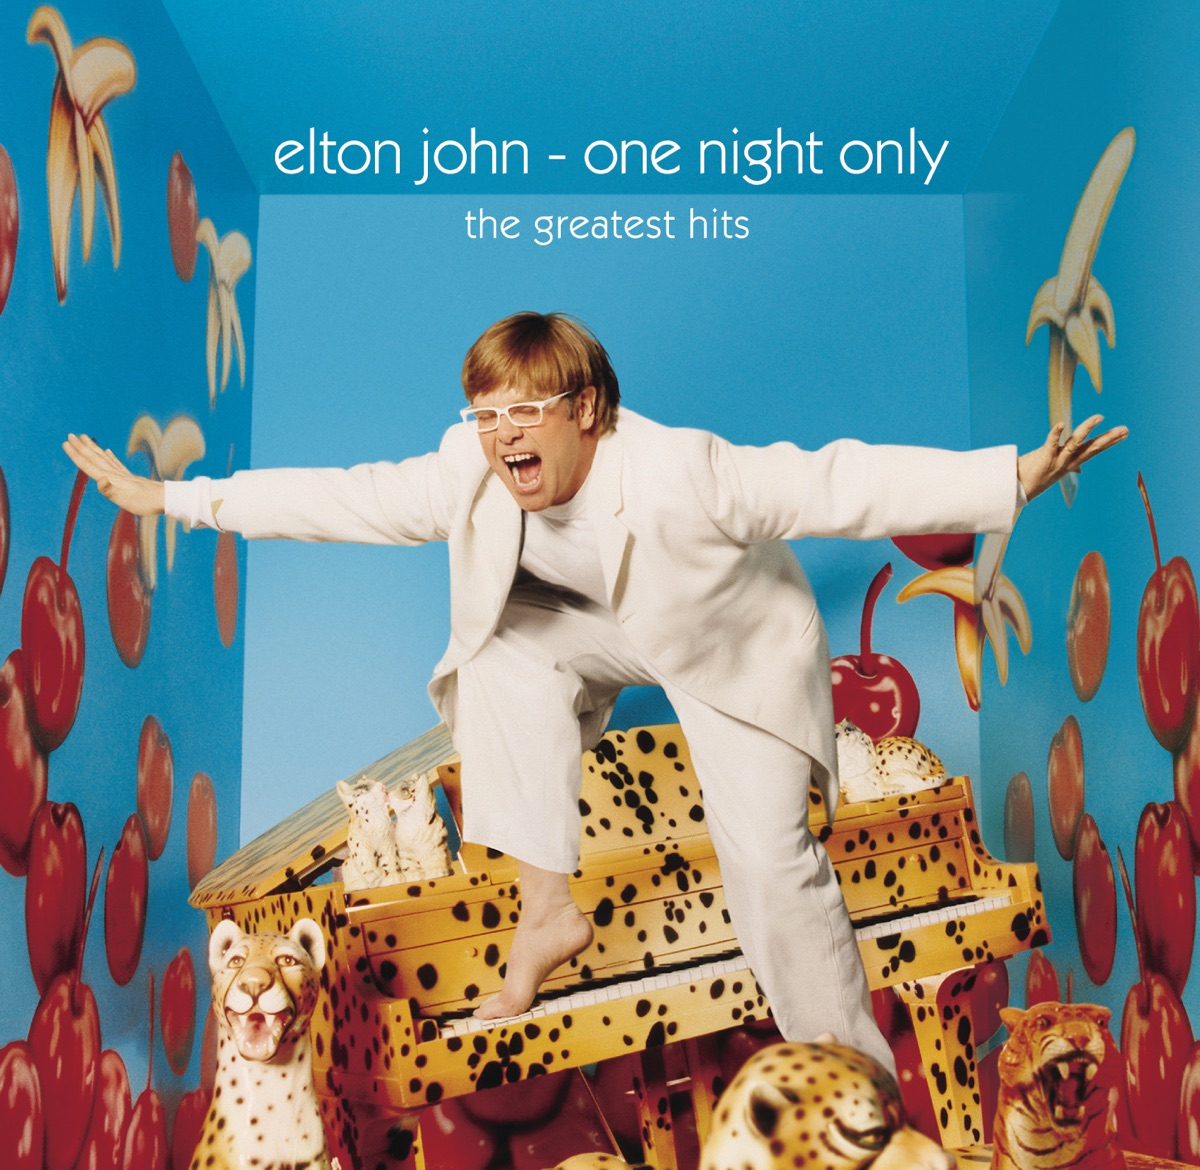 One Night Only The Greatest Hits Live Elton John CD cover